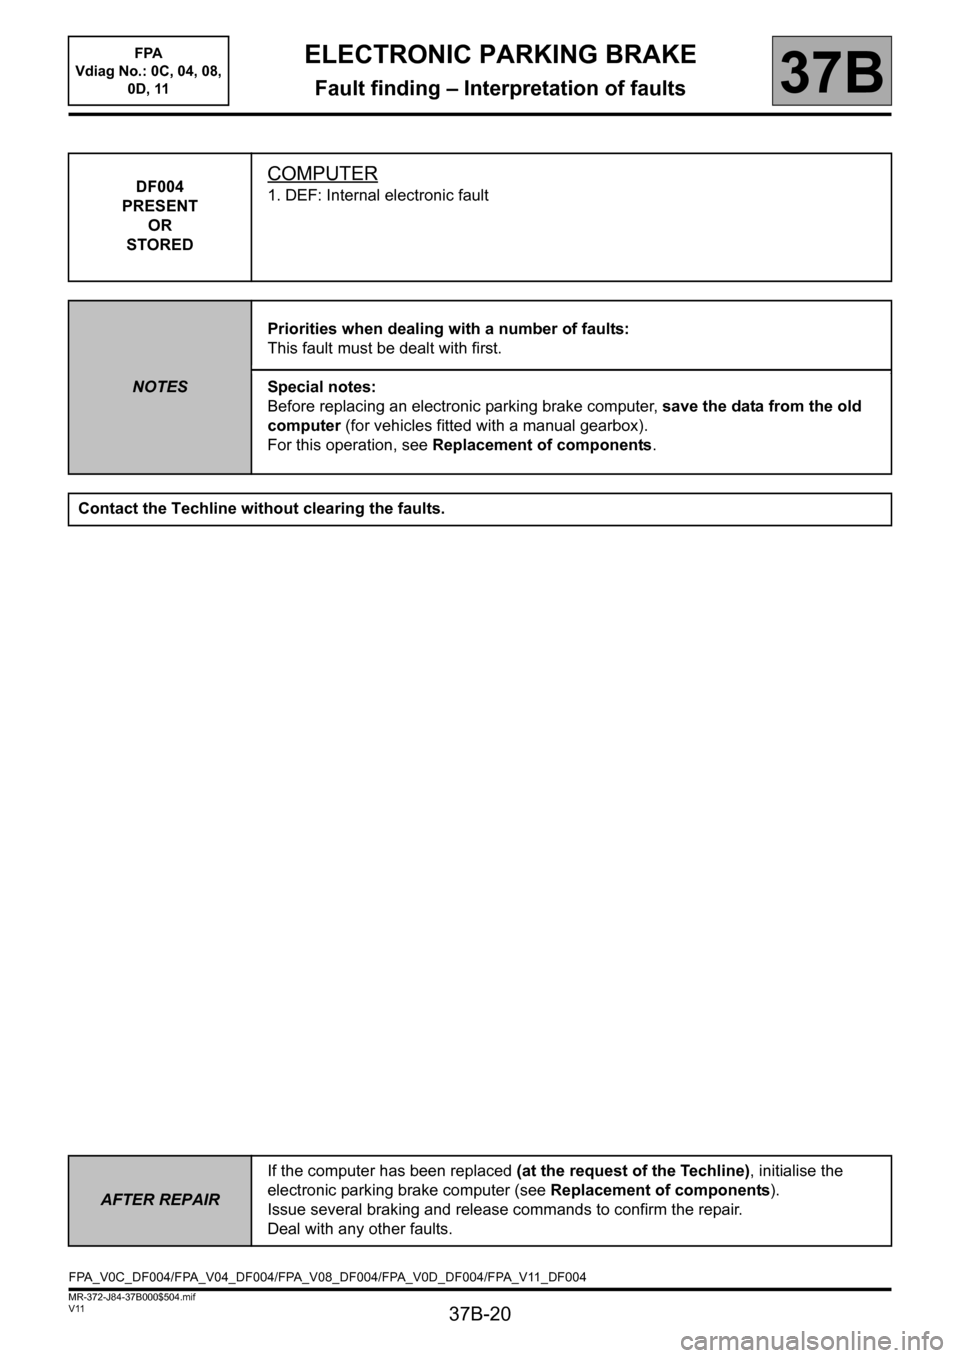 RENAULT SCENIC 2013 J95 / 3.G Electronic Parking Brake Workshop Manual, Page 20